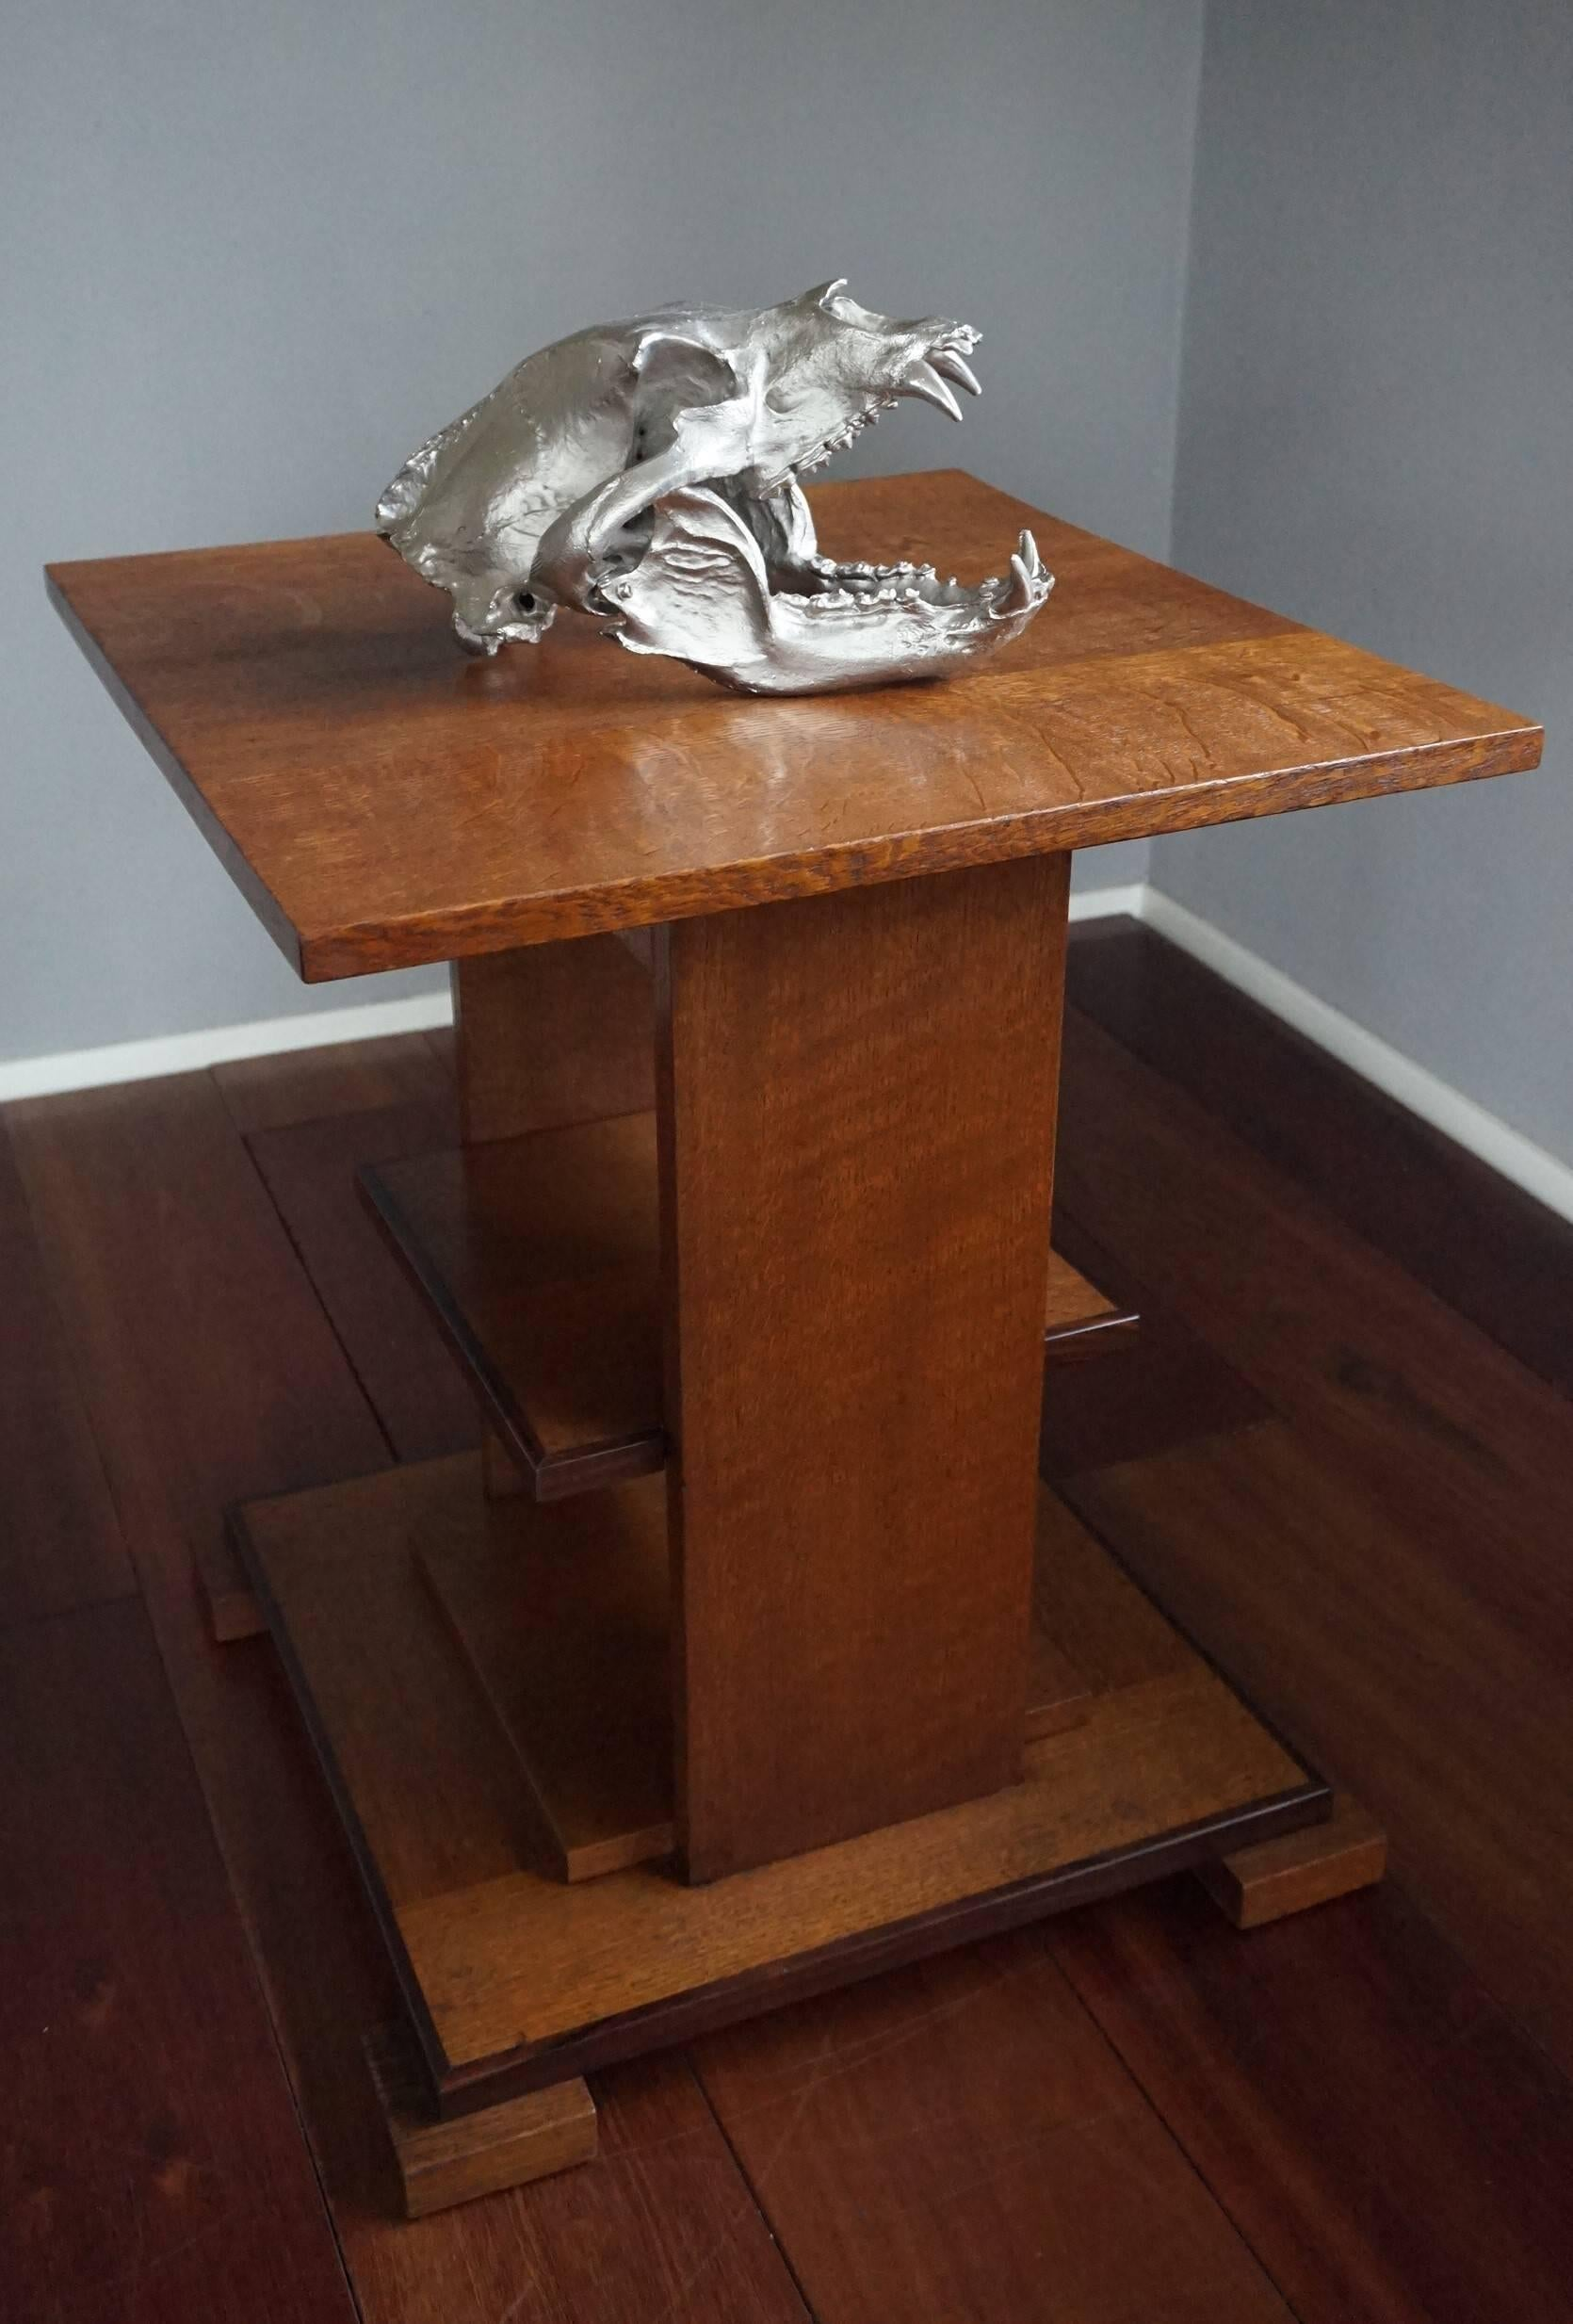 High Quality Impressive And Decorative, Chrome Painted Modern Bronze Bear Skull  Sculpture For Sale 4 Design Inspirations